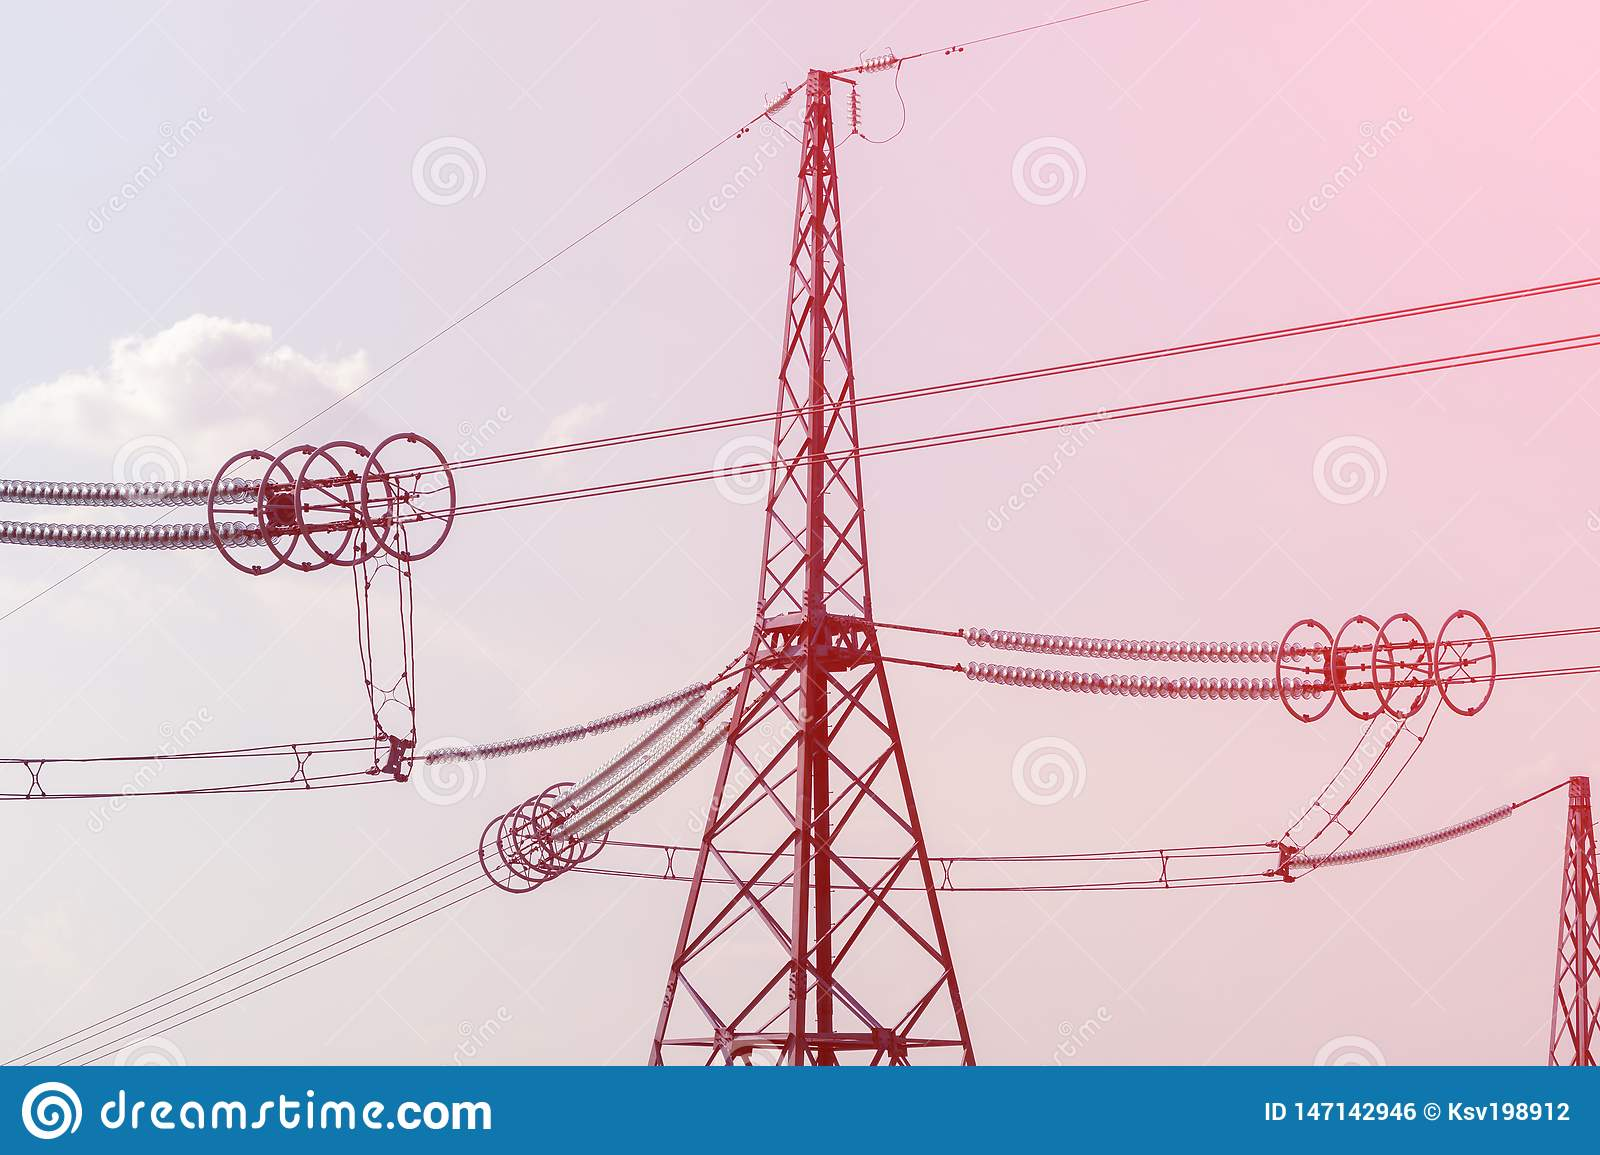 sky phone line wiring diagram metal poles of a power line with wires against a blue sky sunset  wires against a blue sky sunset